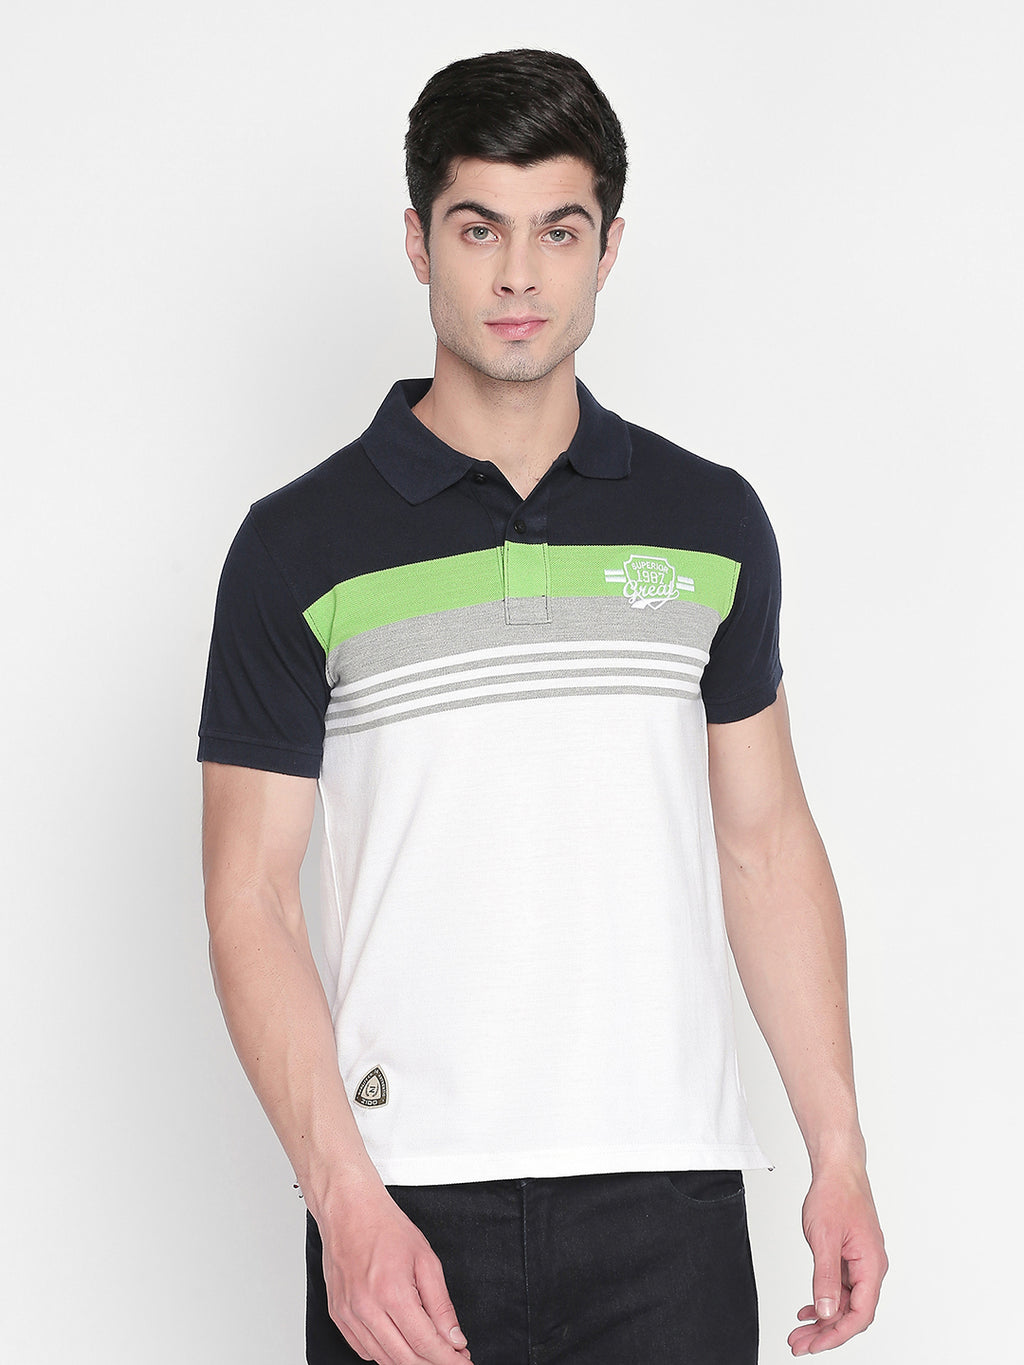 ZIDO Regular Fit Cotton Blend Striped T-Shirt for Men's TSHSTP315